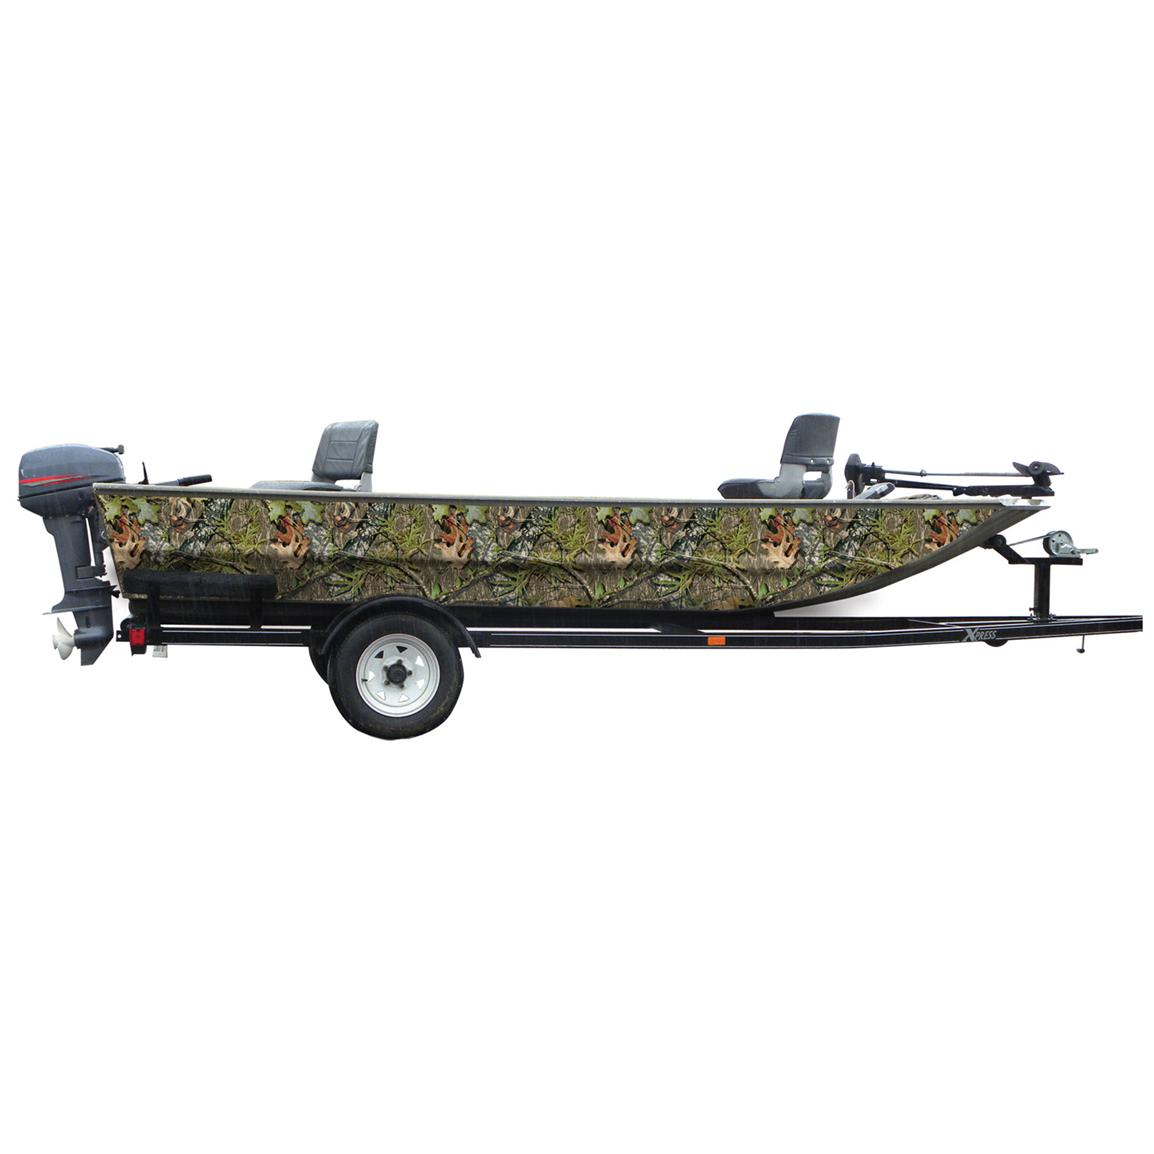 Mossy Oak Graphics® 16 foot Boat Side Camouflage Kit, Obsession